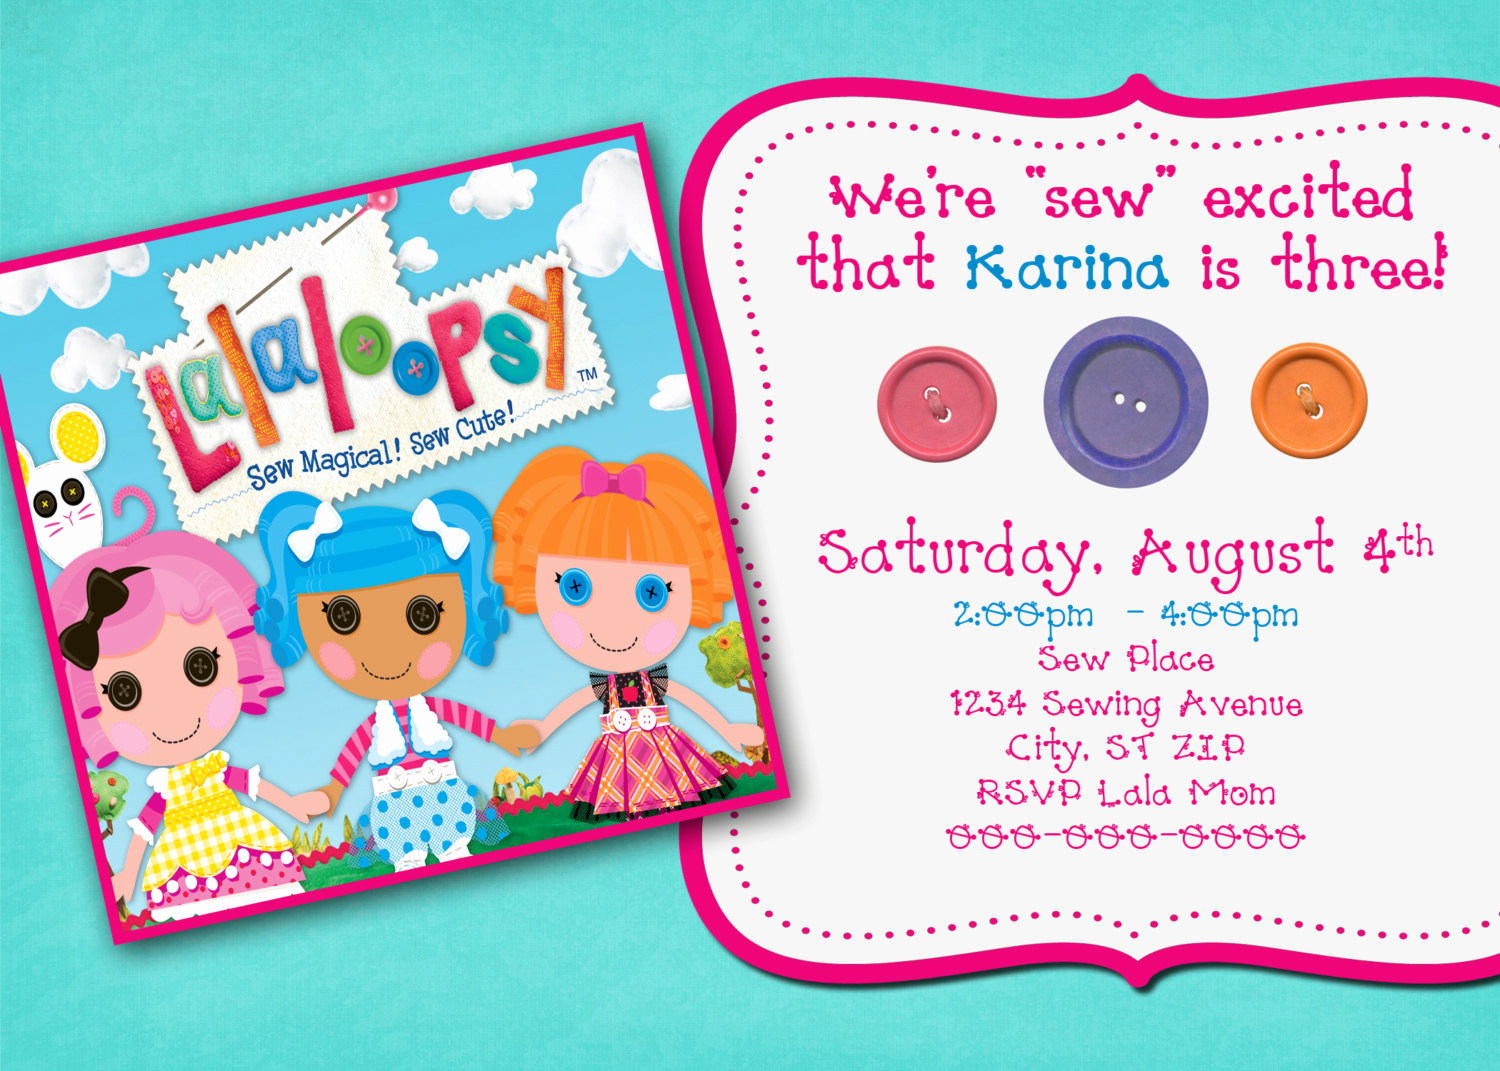 lalaloopsy birthday invitation wording ; 4th-birthday-invitation-wording-luxury-lalaloopsy-inspired-birthday-invitation-of-4th-birthday-invitation-wording